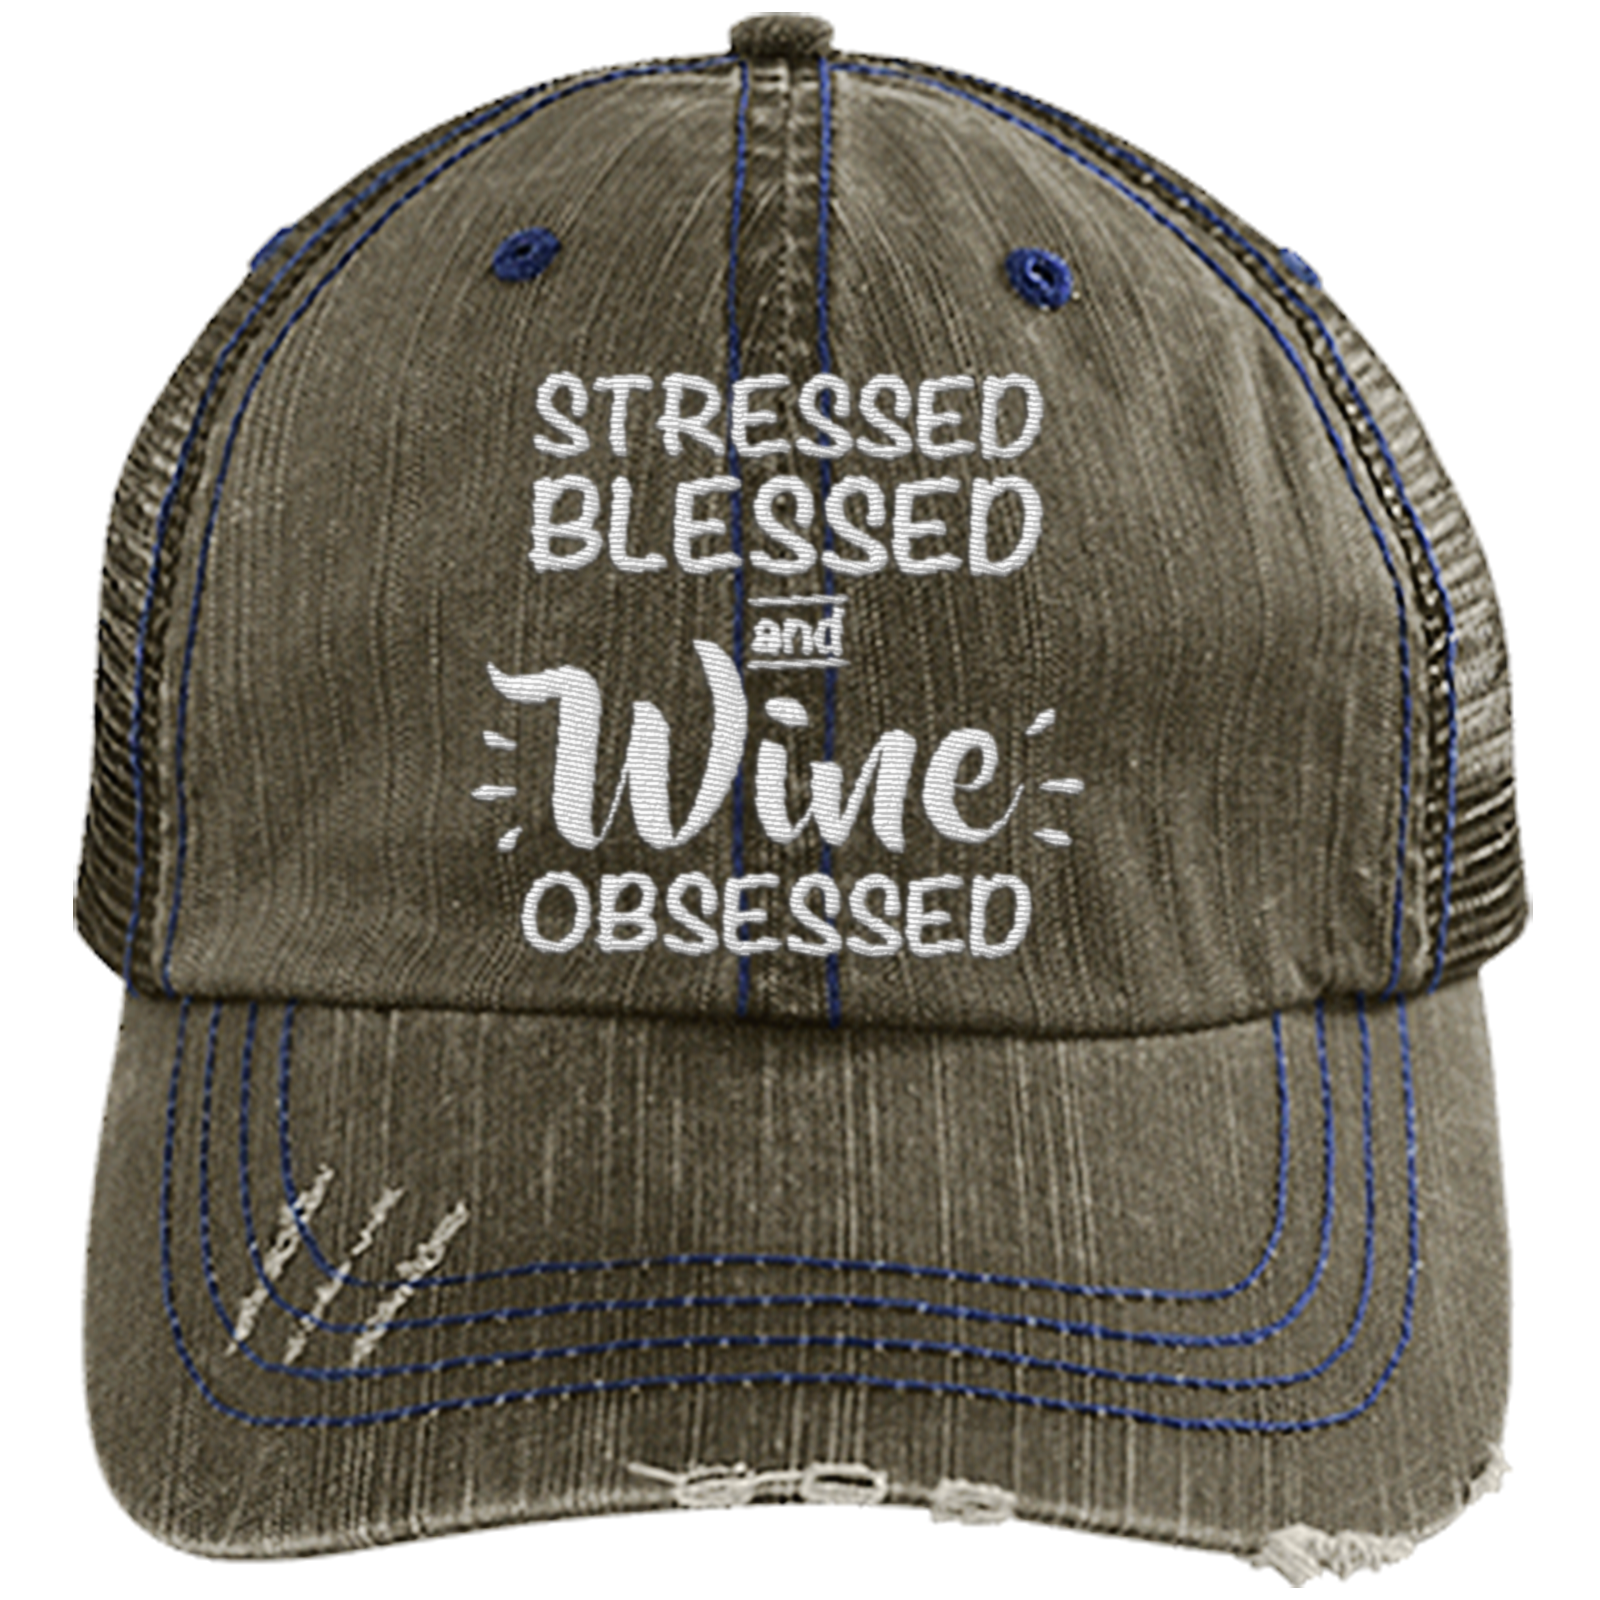 Stressed Blessed Obsessed - Distressed Trucker Cap (Mesh Back)